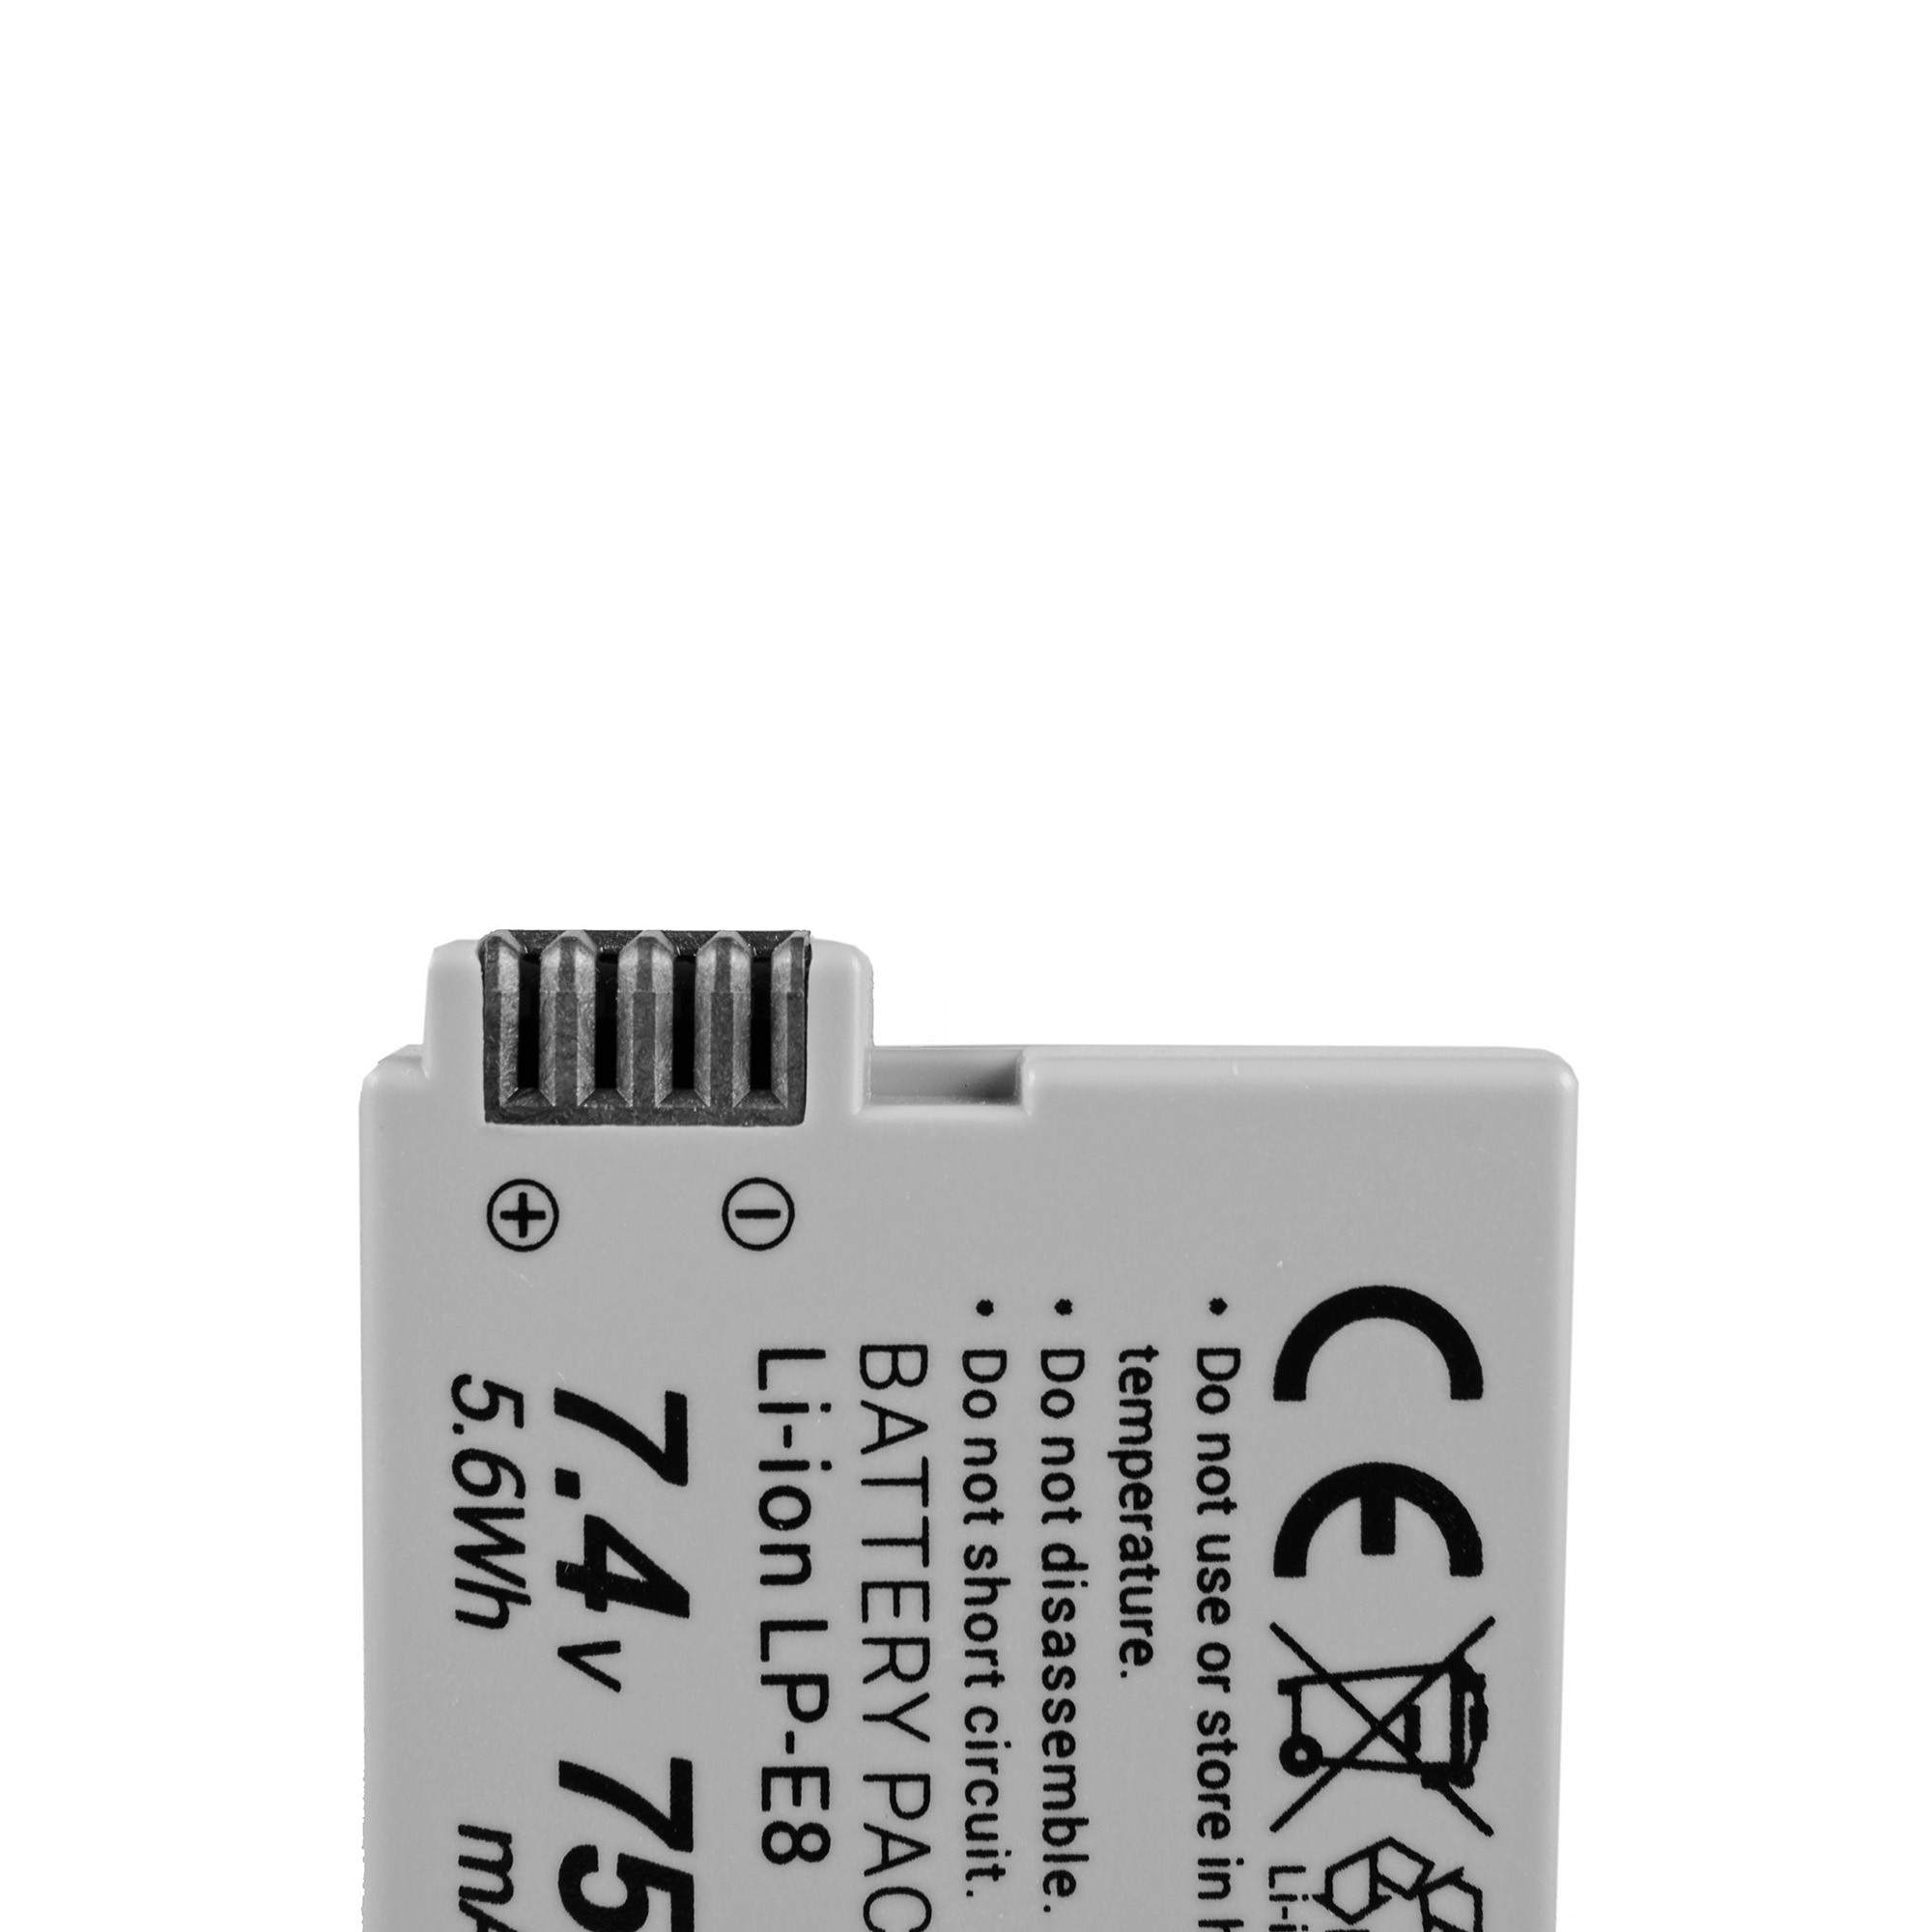 Green Cell Battery LP-E8 ® Canon EOS Rebel T2i, T3i, T4i, T5i, EOS 600D, 550D, 650D, 700D, Kiss X5, X4, X6 7.4V 750mAh